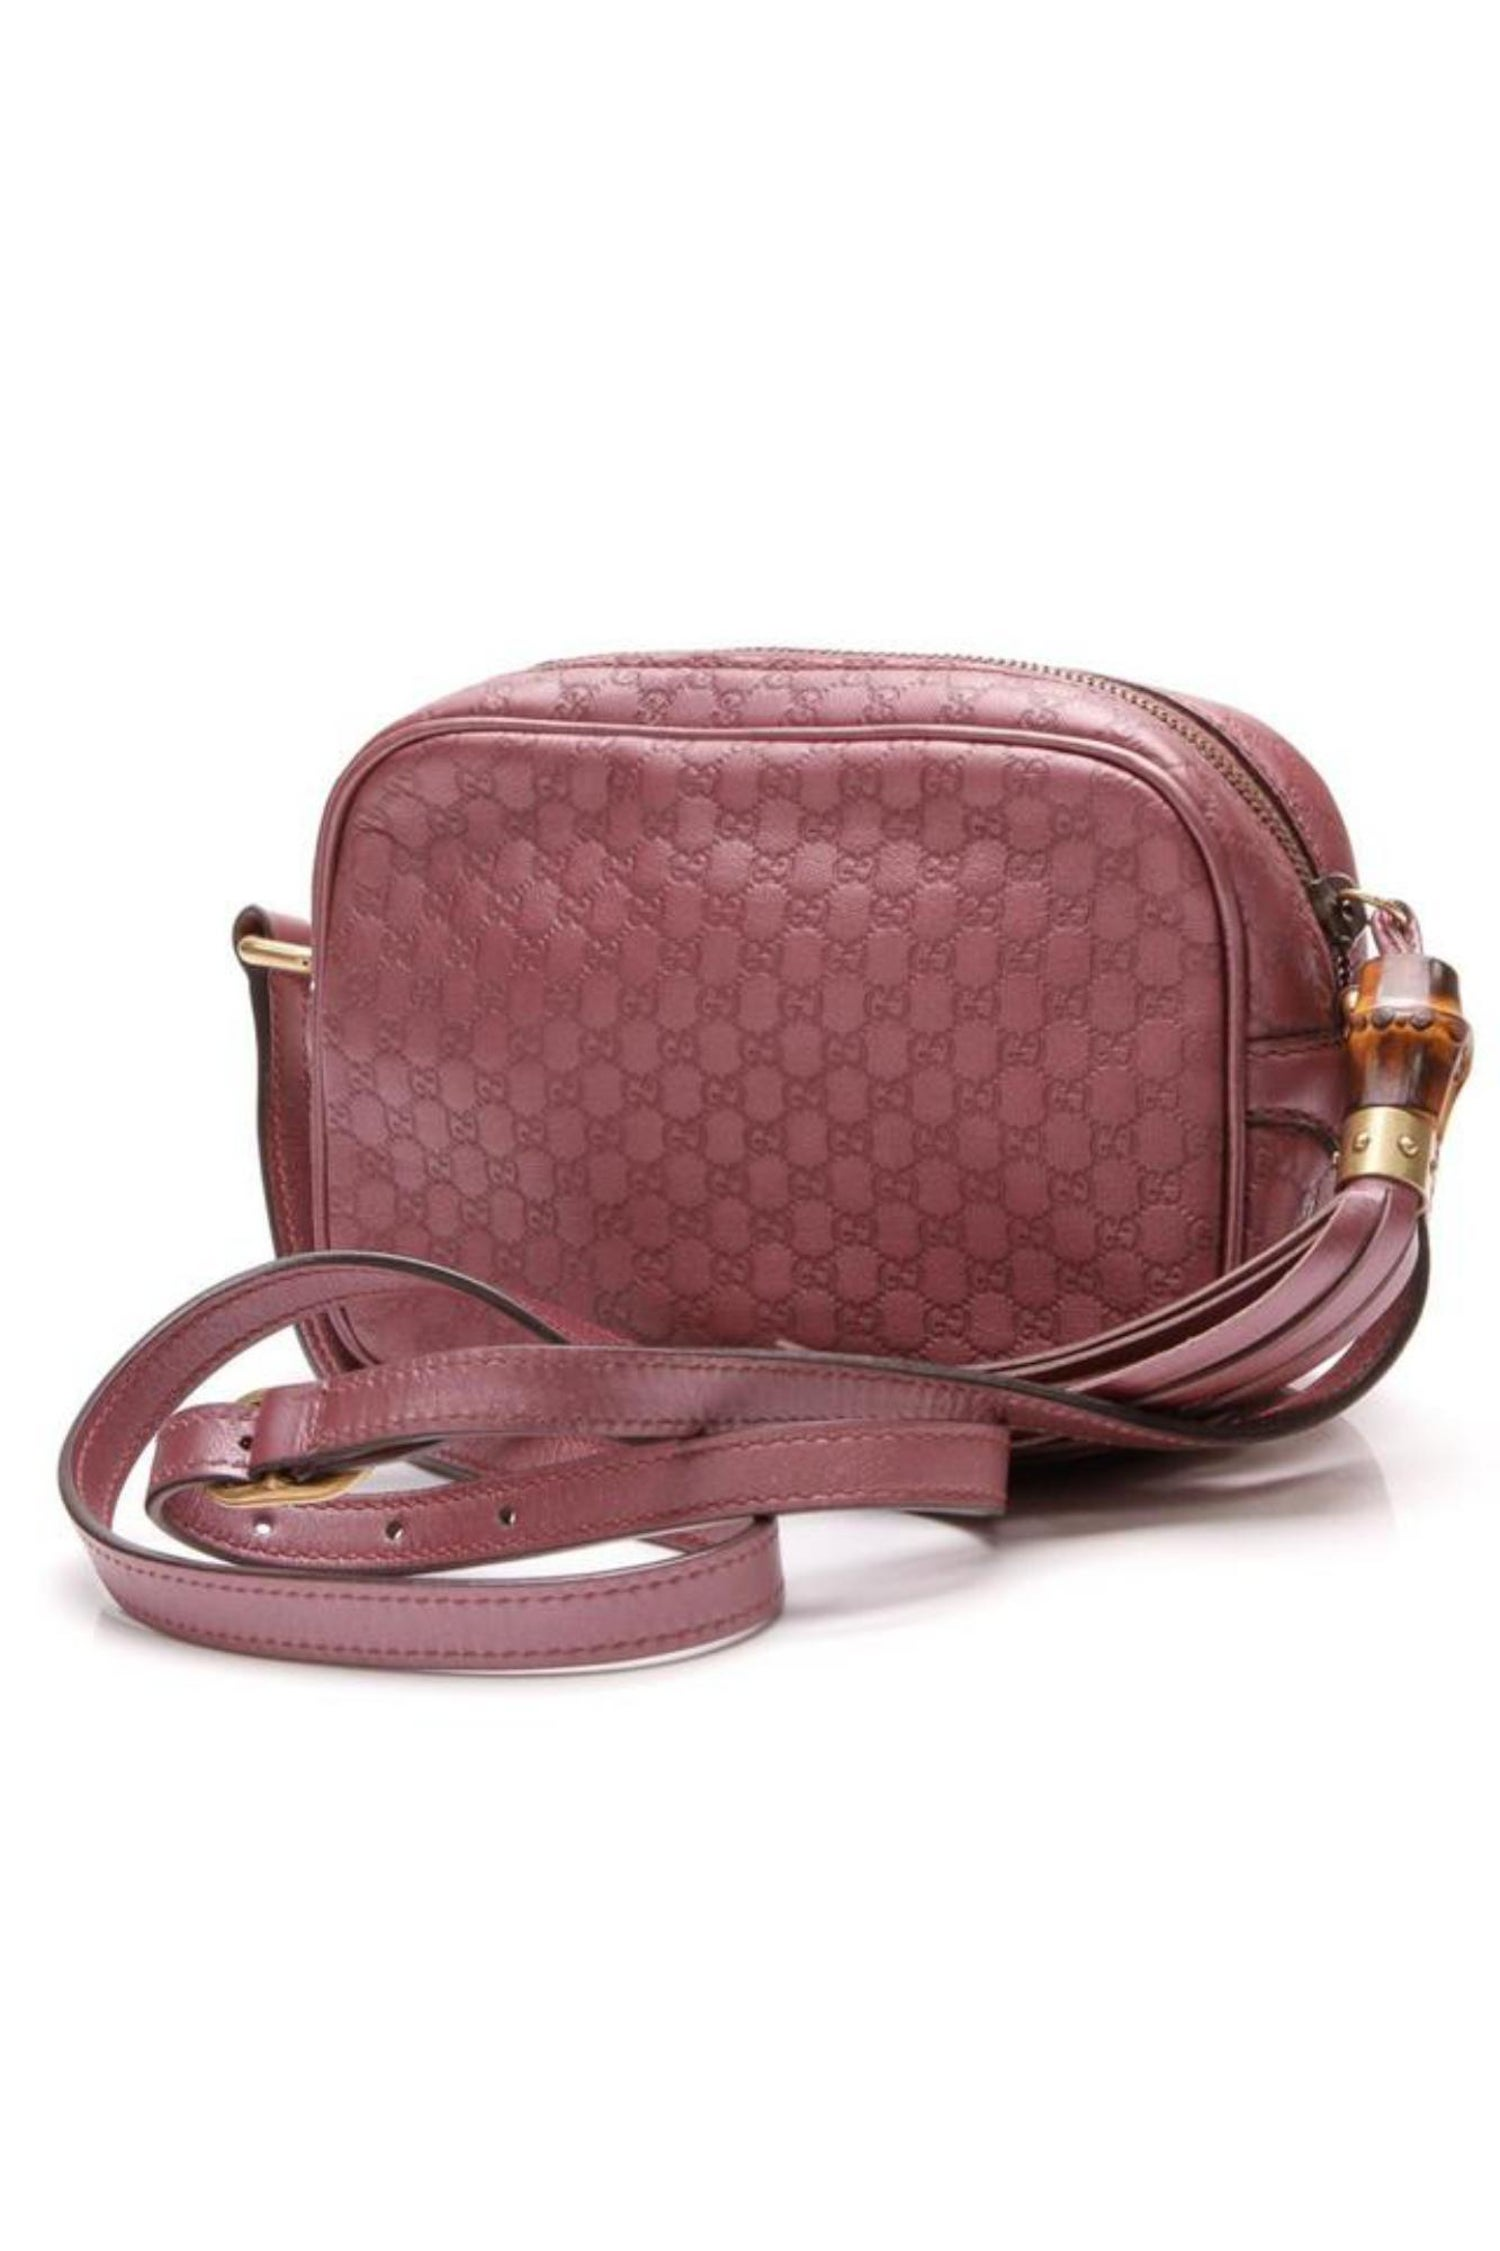 beb781f622fa Gucci Soho Guccissima Sunshine Disco 866100 Rose (Pink) Leather Cross Body  Bag For Sale at 1stdibs